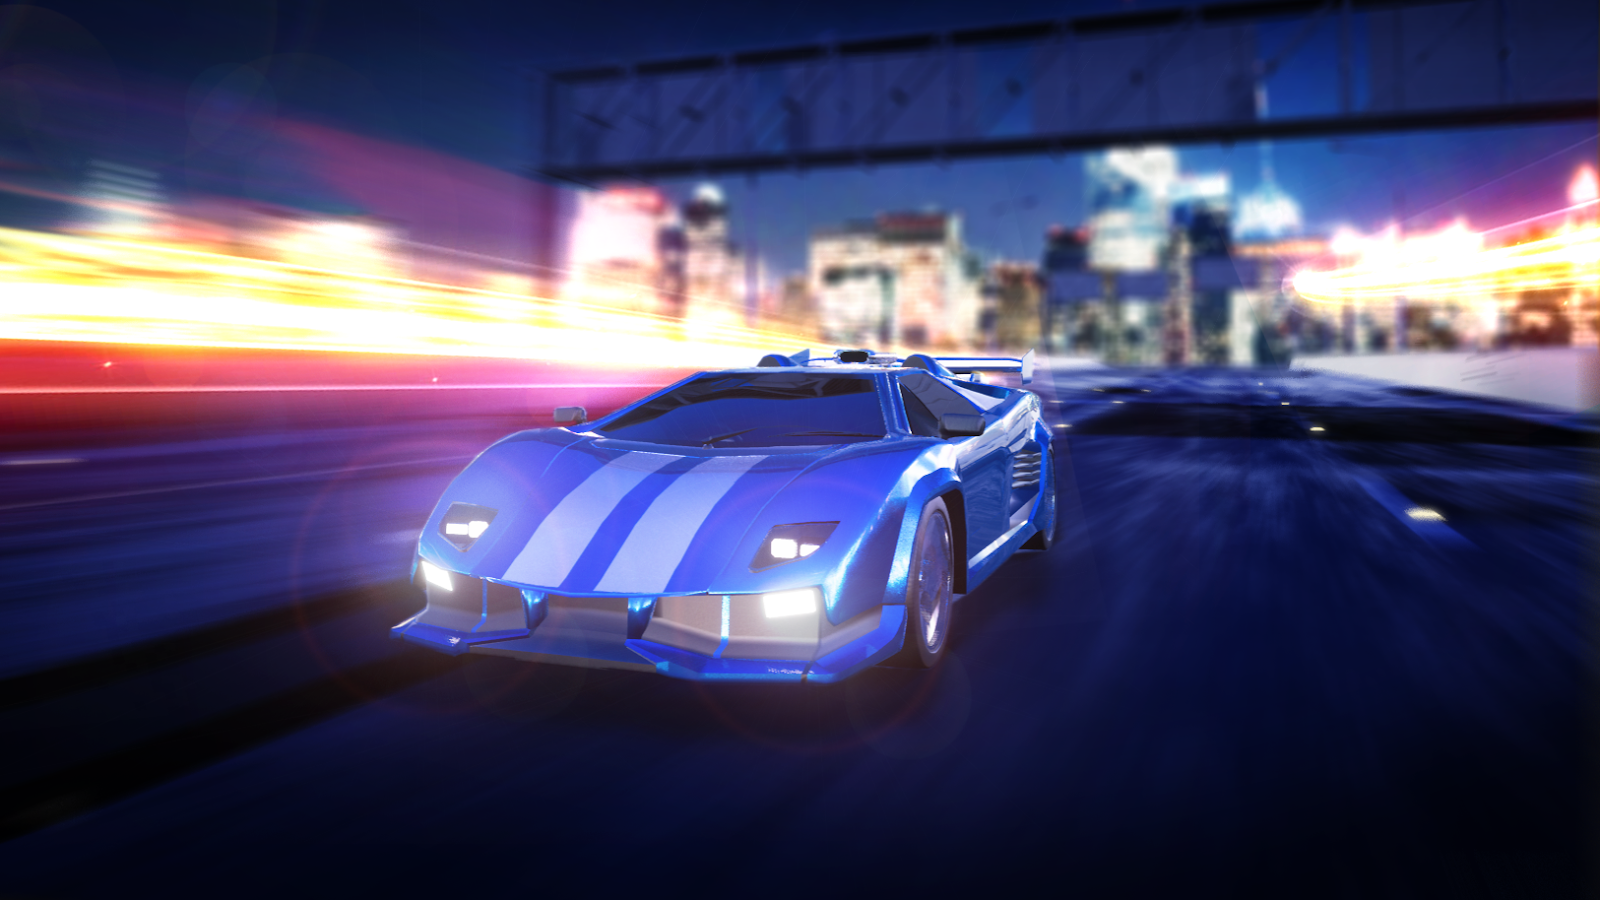 The Edge: Night Driver (iOS, Android)